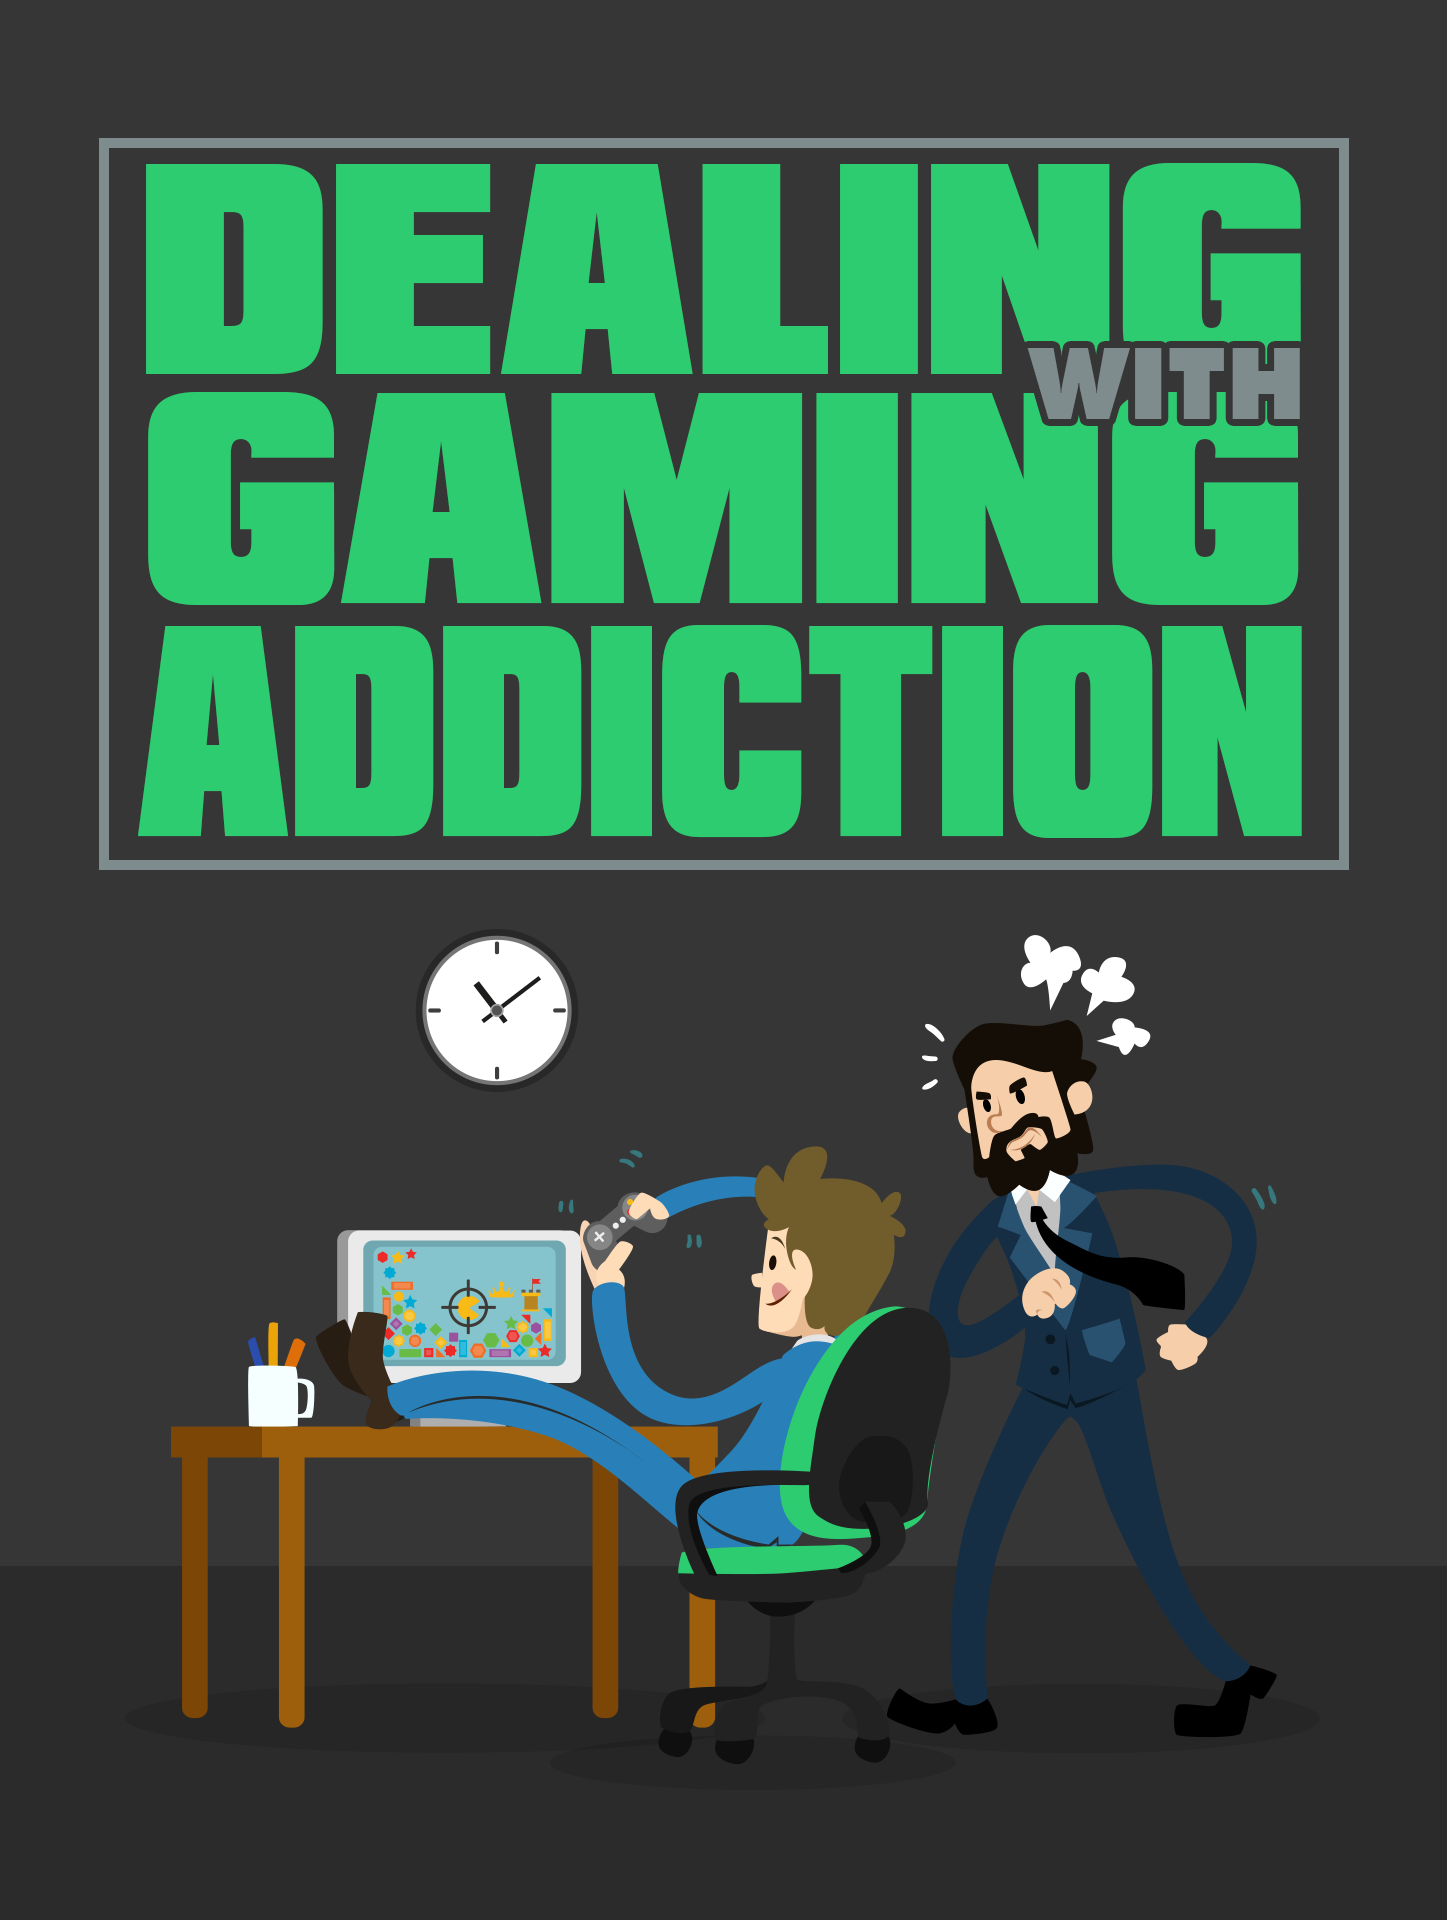 Dealing with gambling addiction rolling hills casino ca